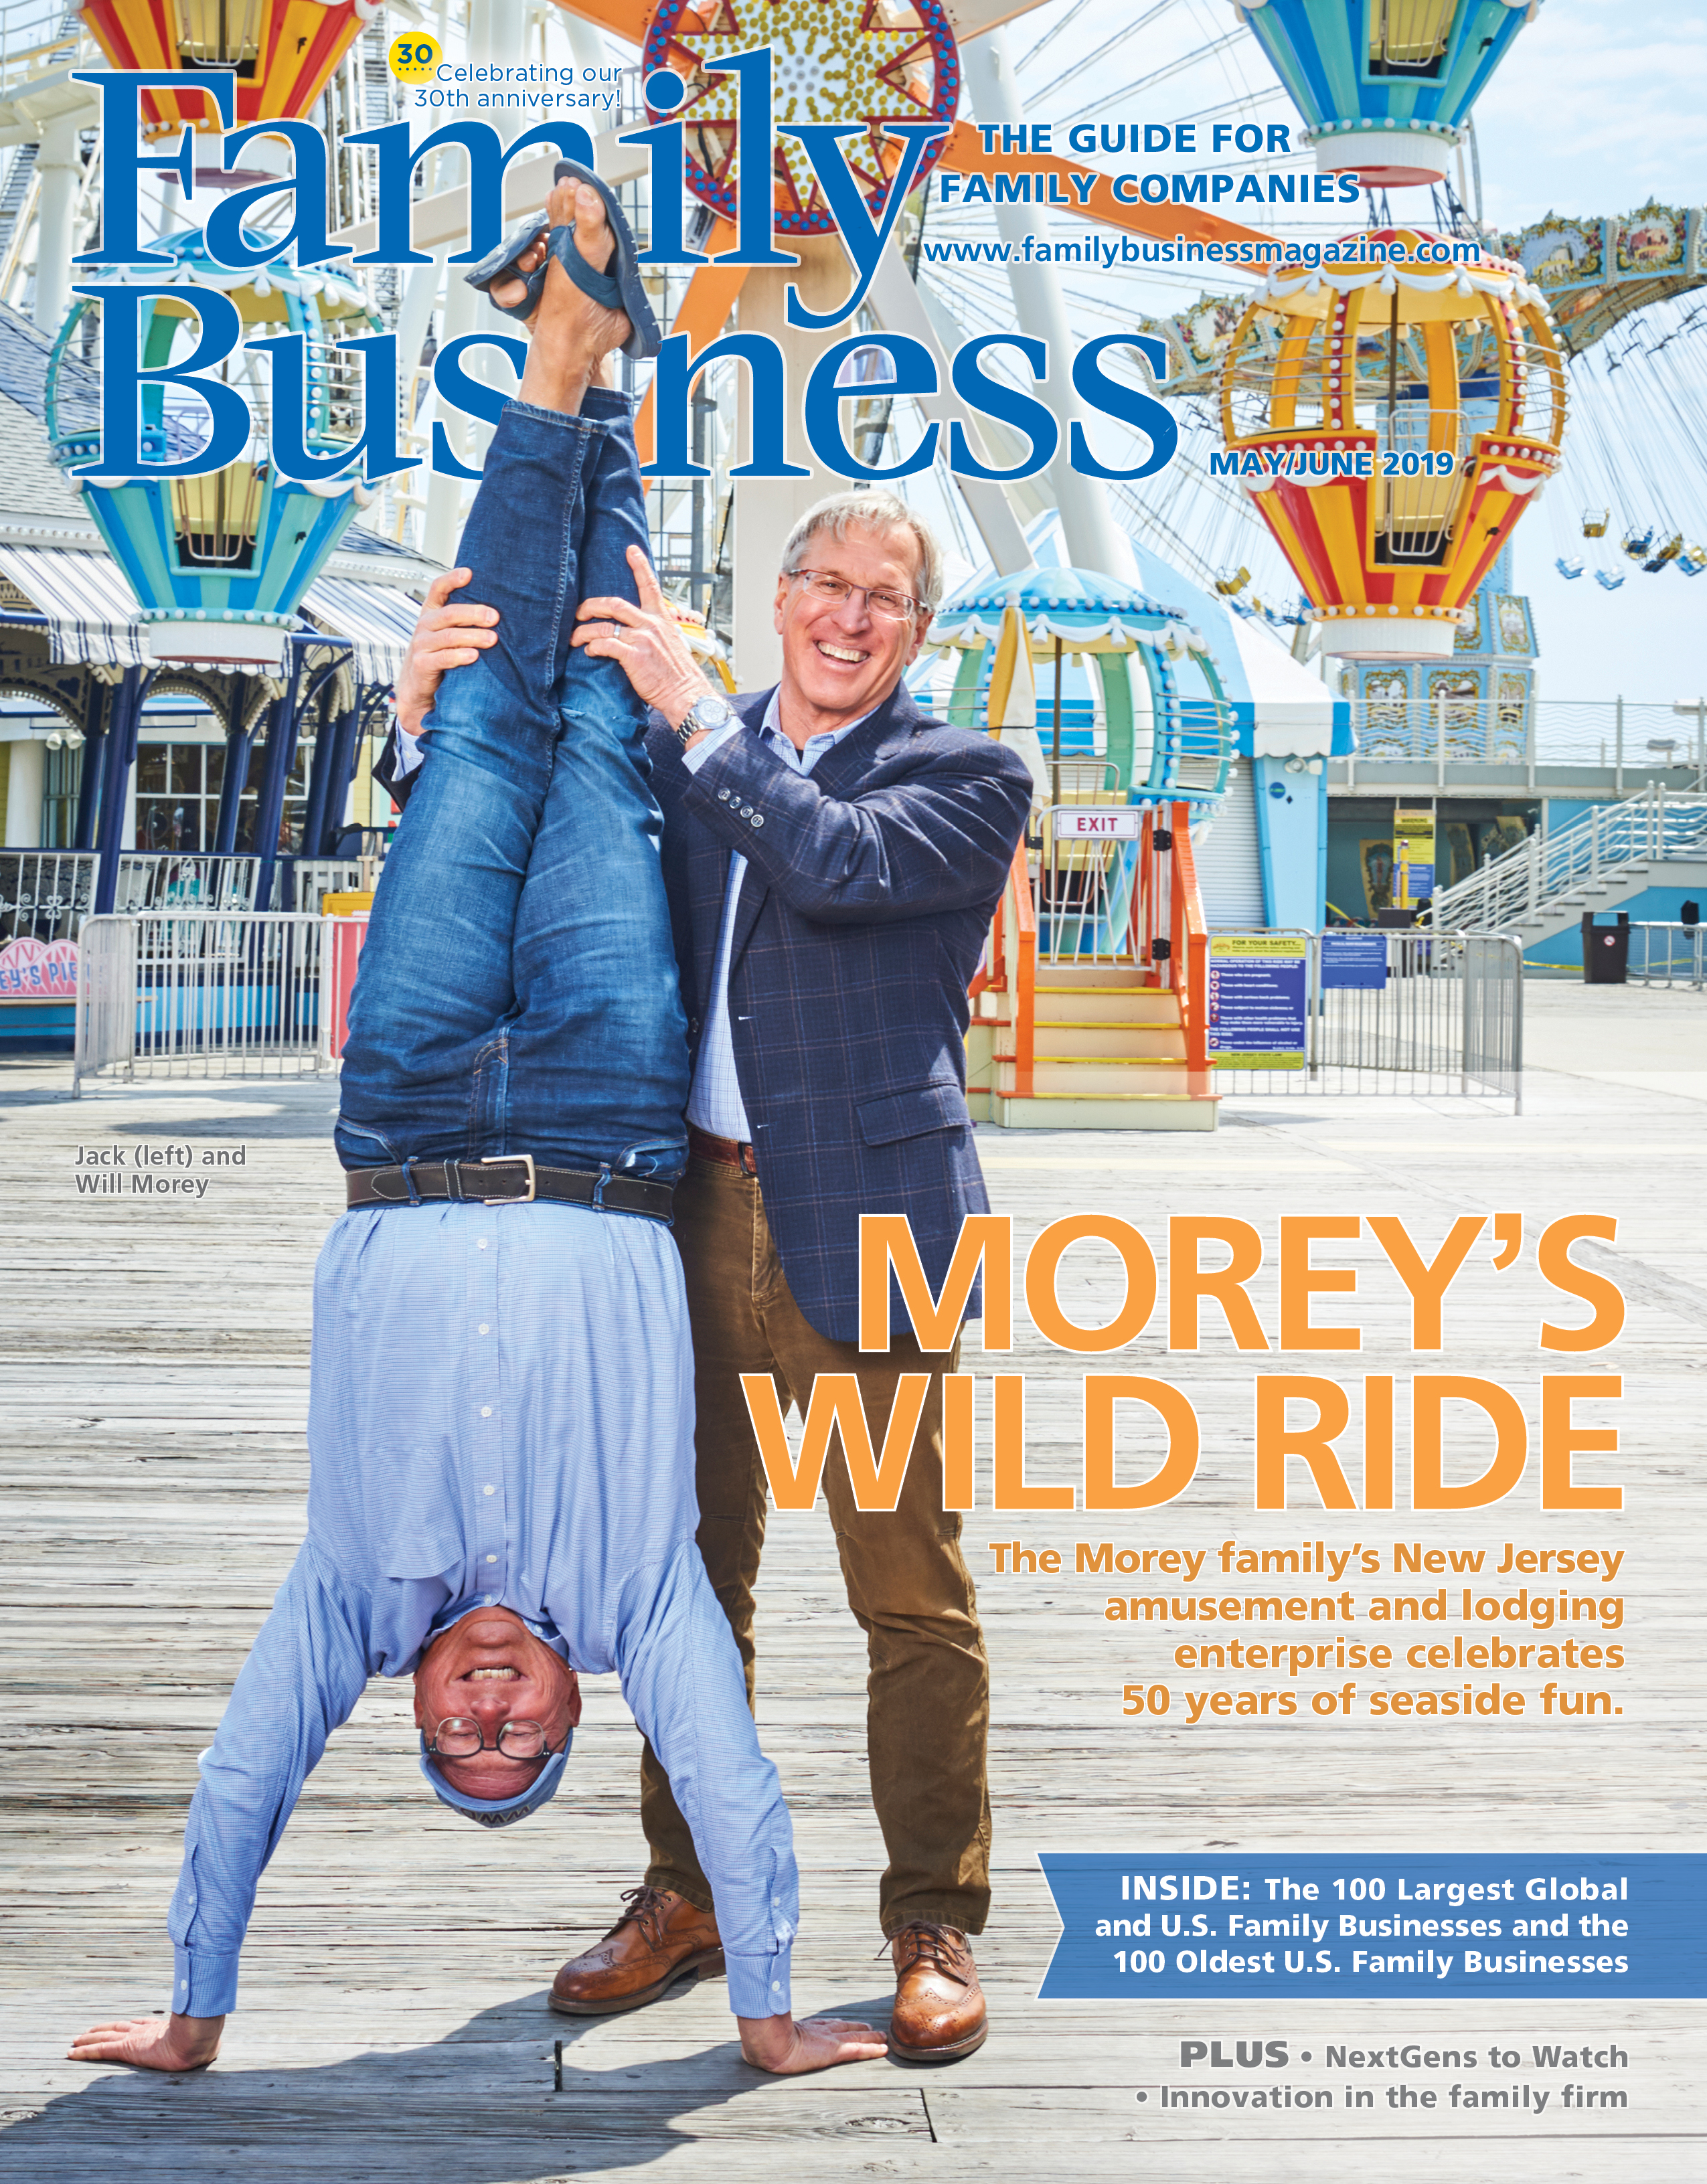 Family Business Magazine May/June 2019 cover